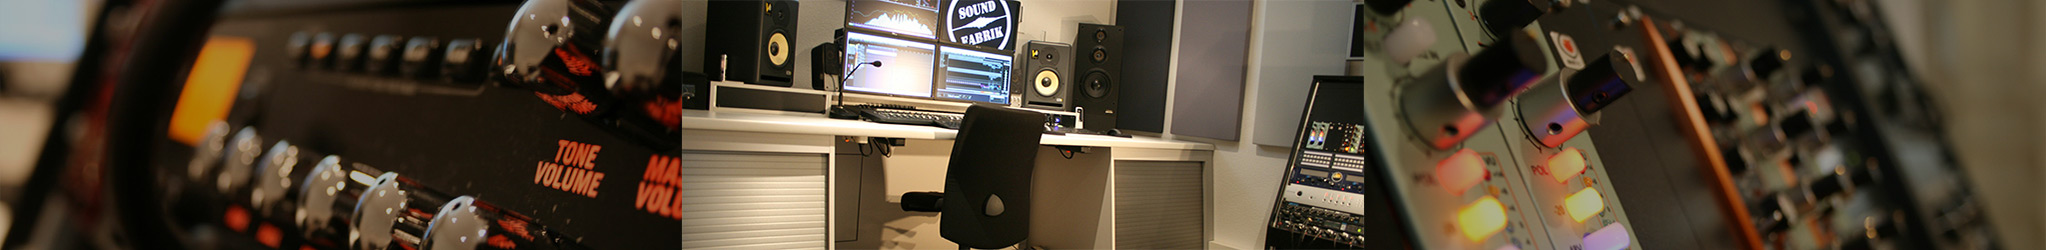 Slider-Soundfabrik-studio-1